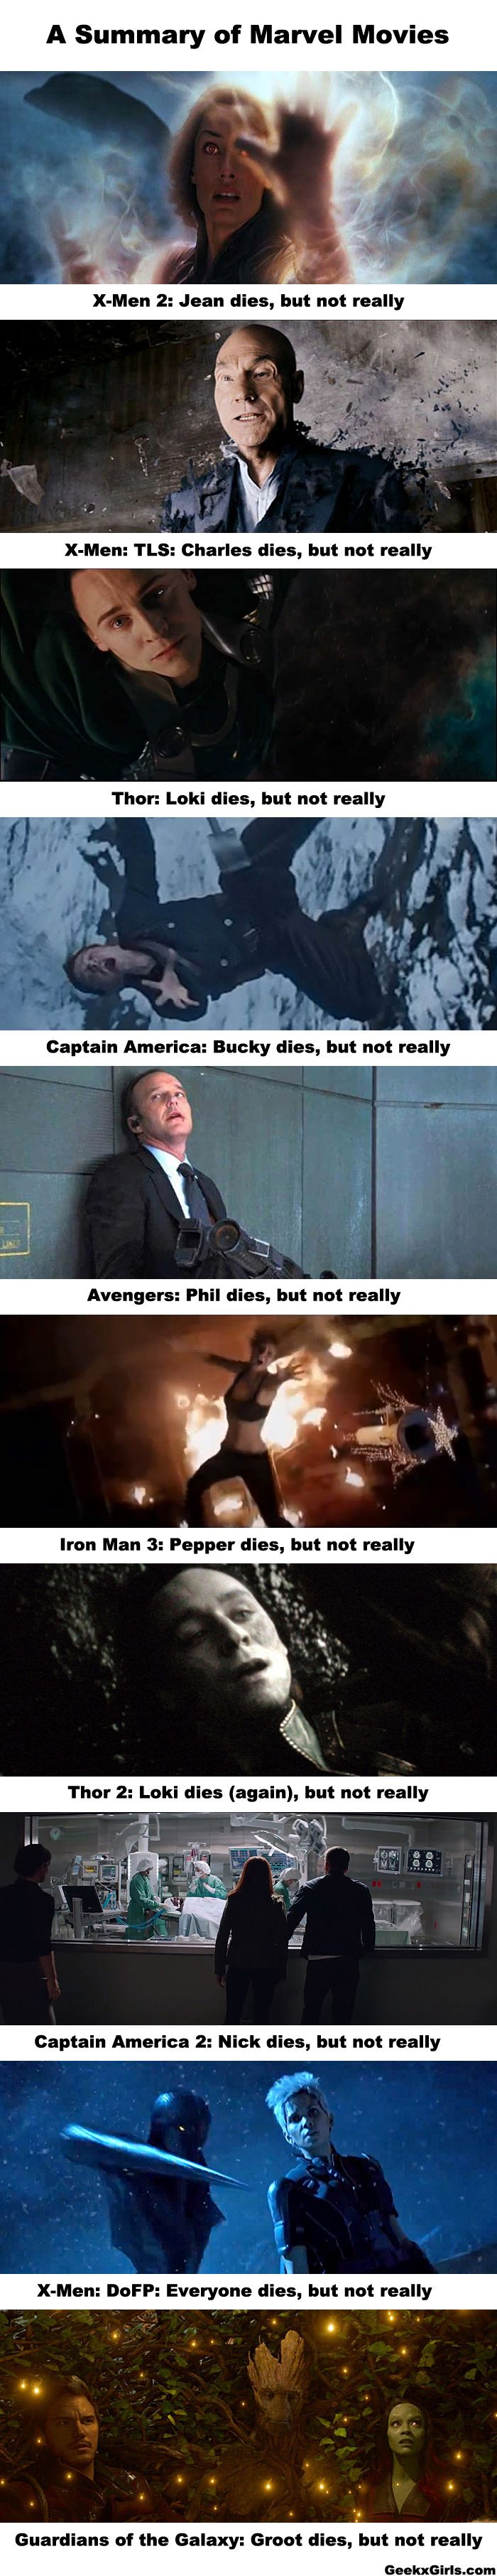 Avengers AoU: Pietro Dies, BUT HE BETTER NOT REALLY!